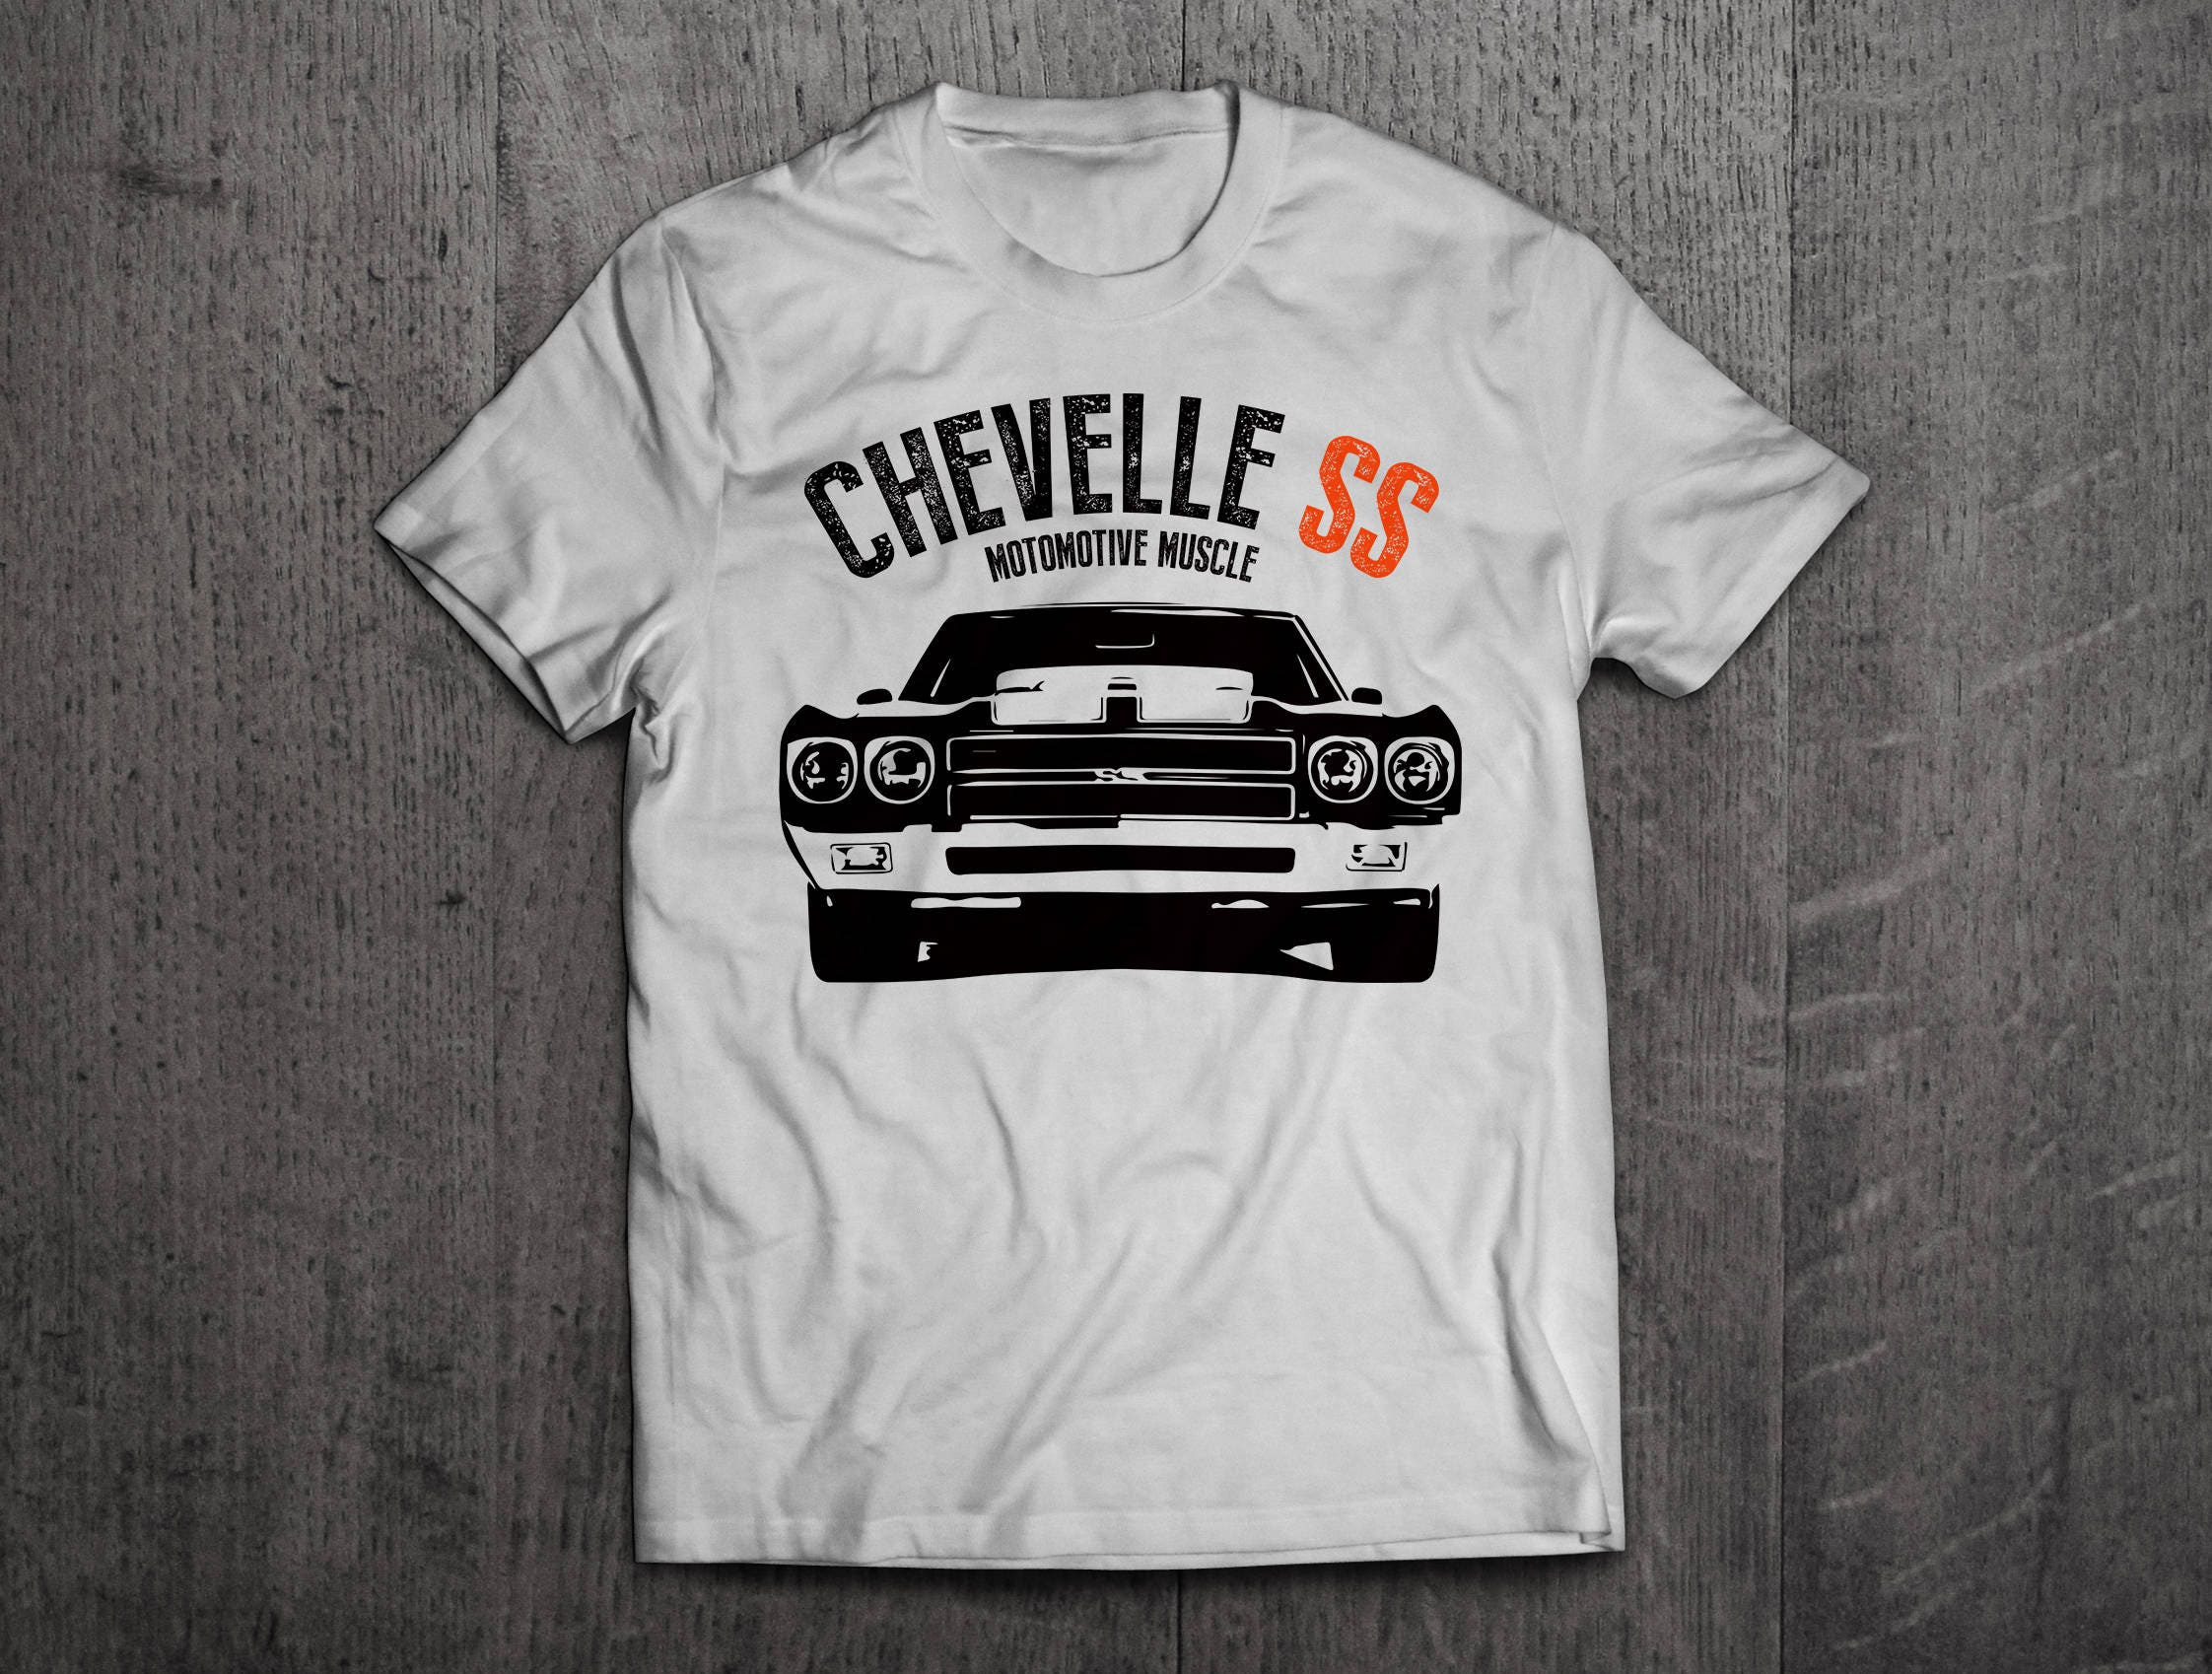 chevy chevelle shirts chevy ss t shirts chevy shirts cars t. Black Bedroom Furniture Sets. Home Design Ideas